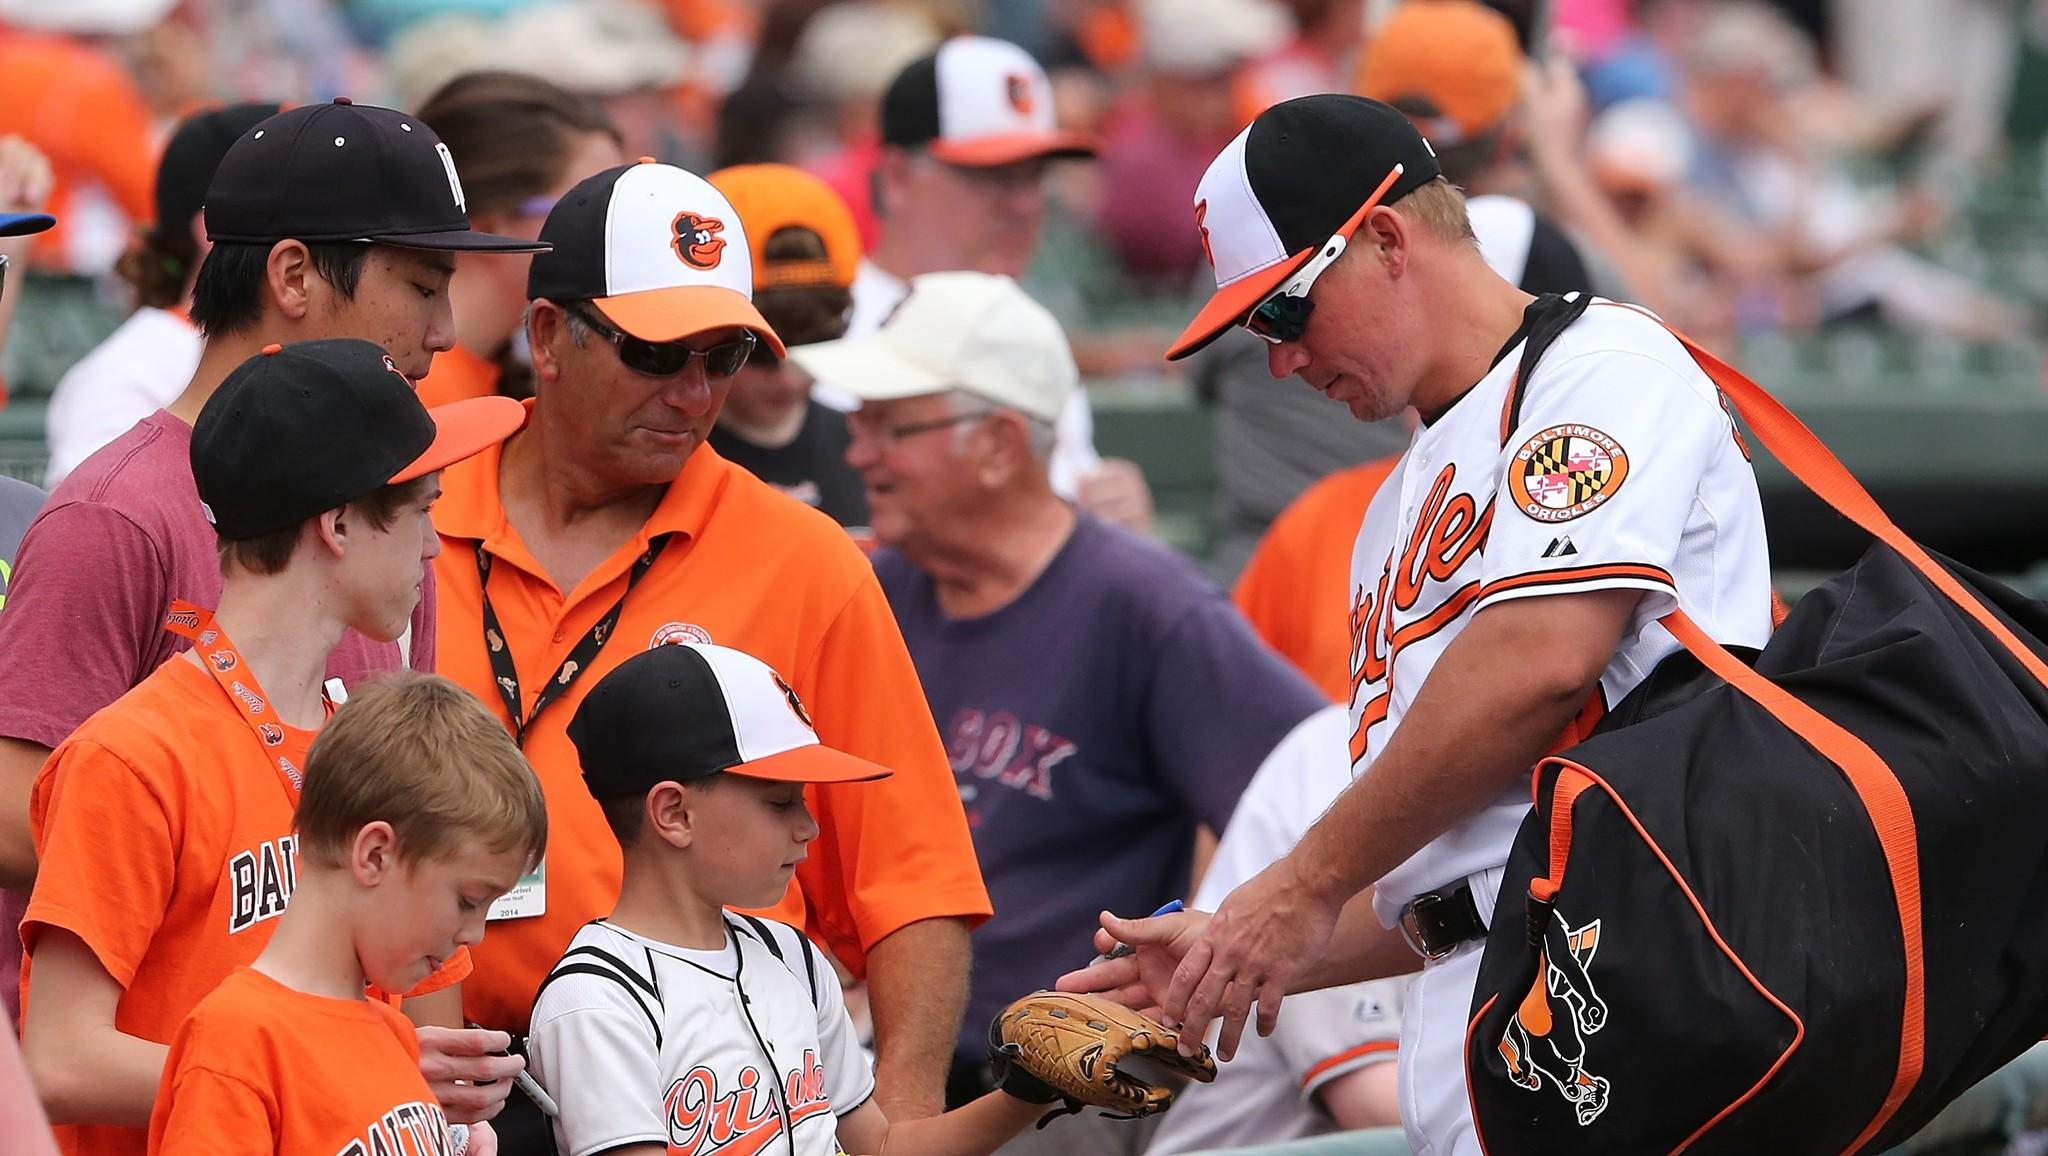 Steve Clevenger signs autographs before a game against the Boston Red Sox this spring.